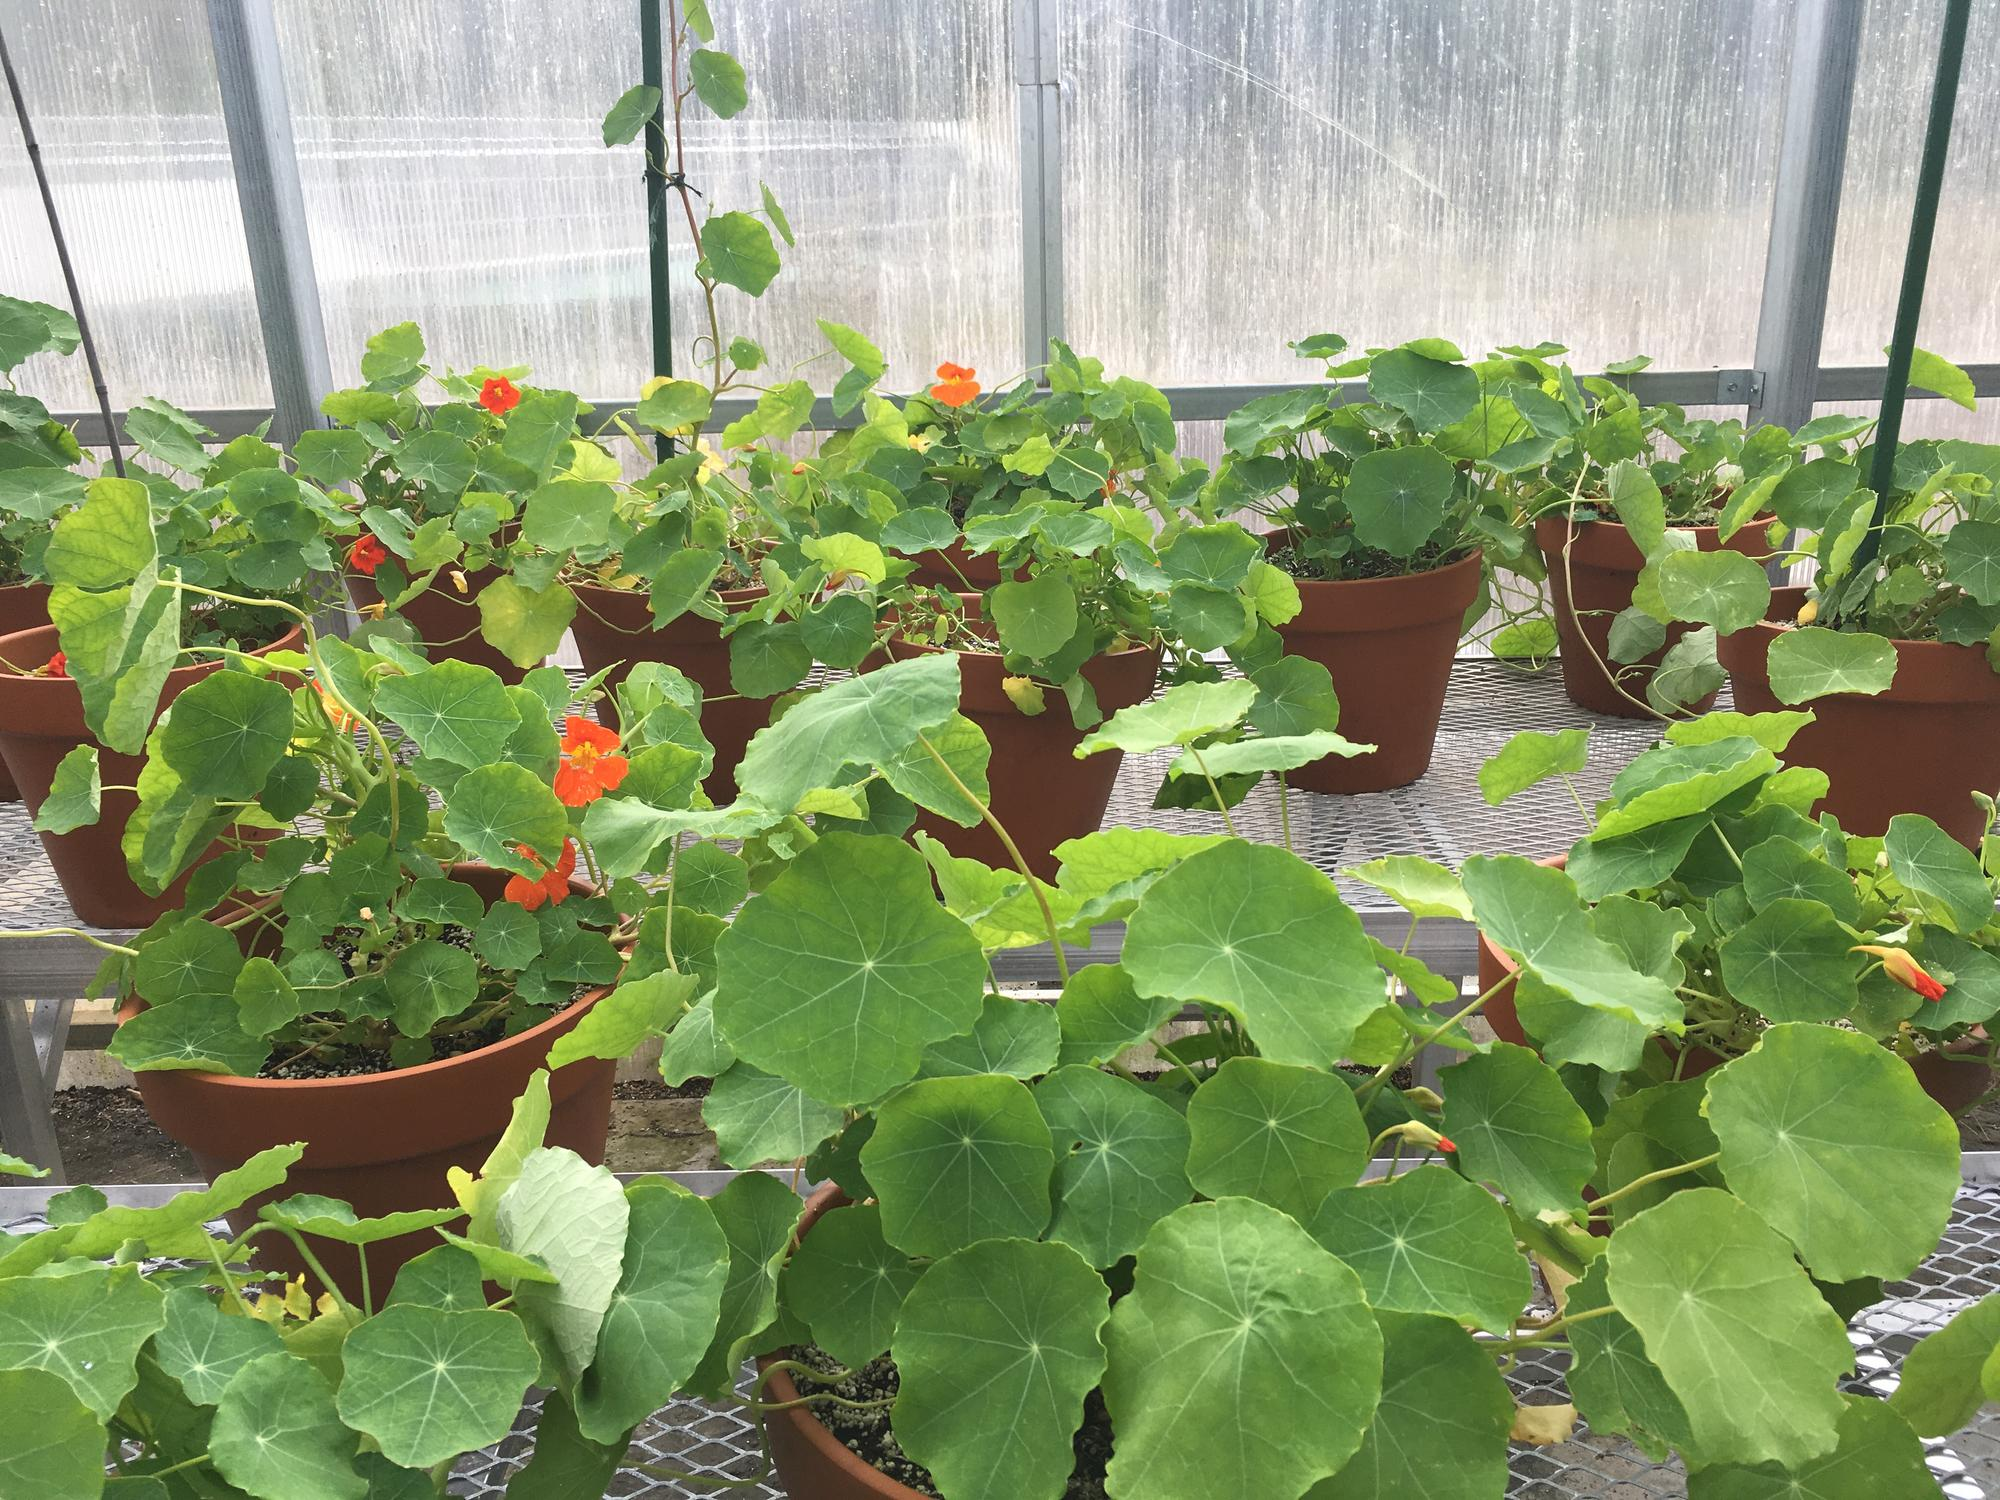 The nasturtiums are moved indoors for the colder months. A close up shot of them growing inside the South Shore greenhouse space.